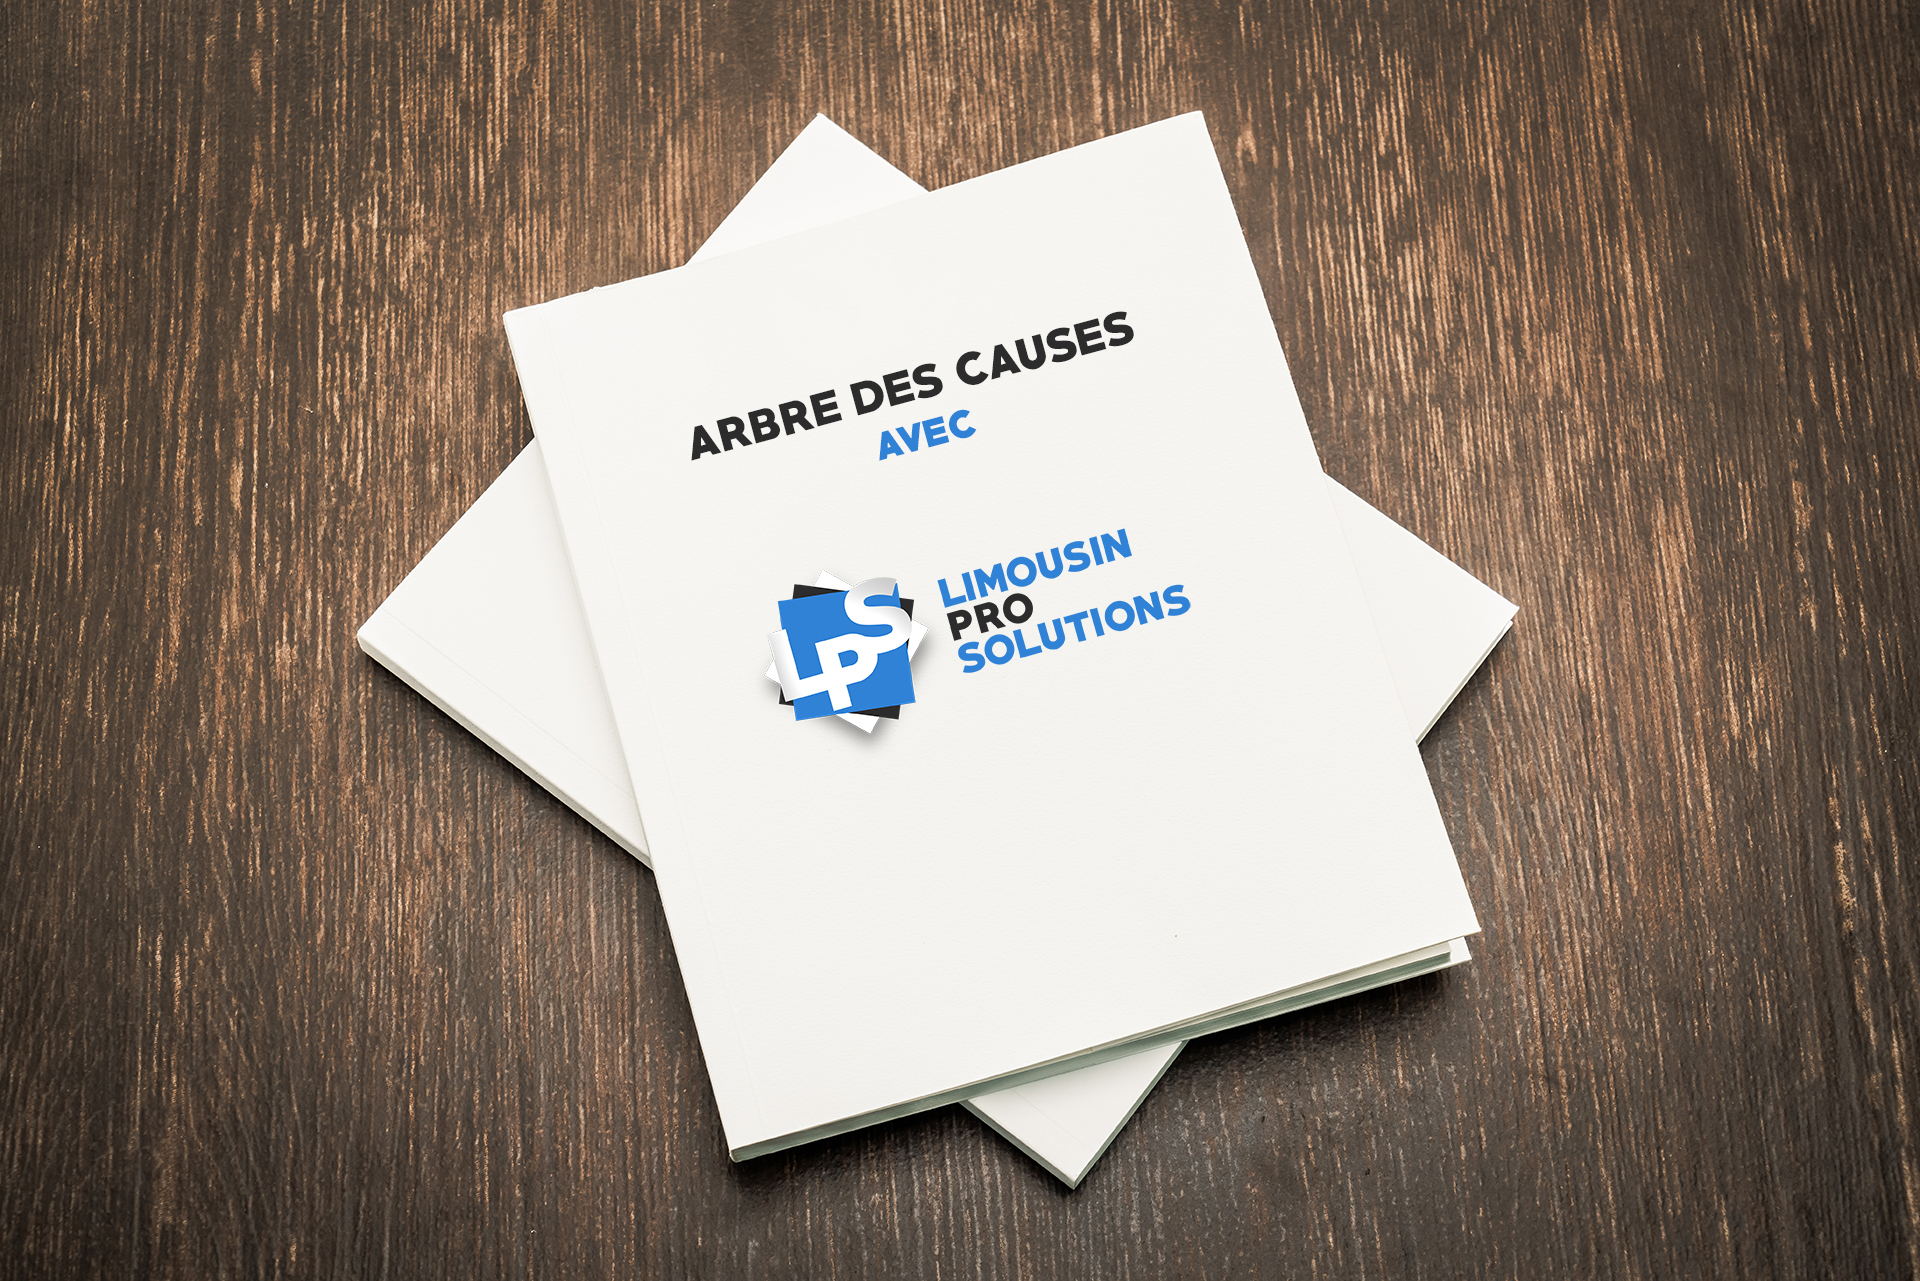 Document limousin pro solutions arbre des causes